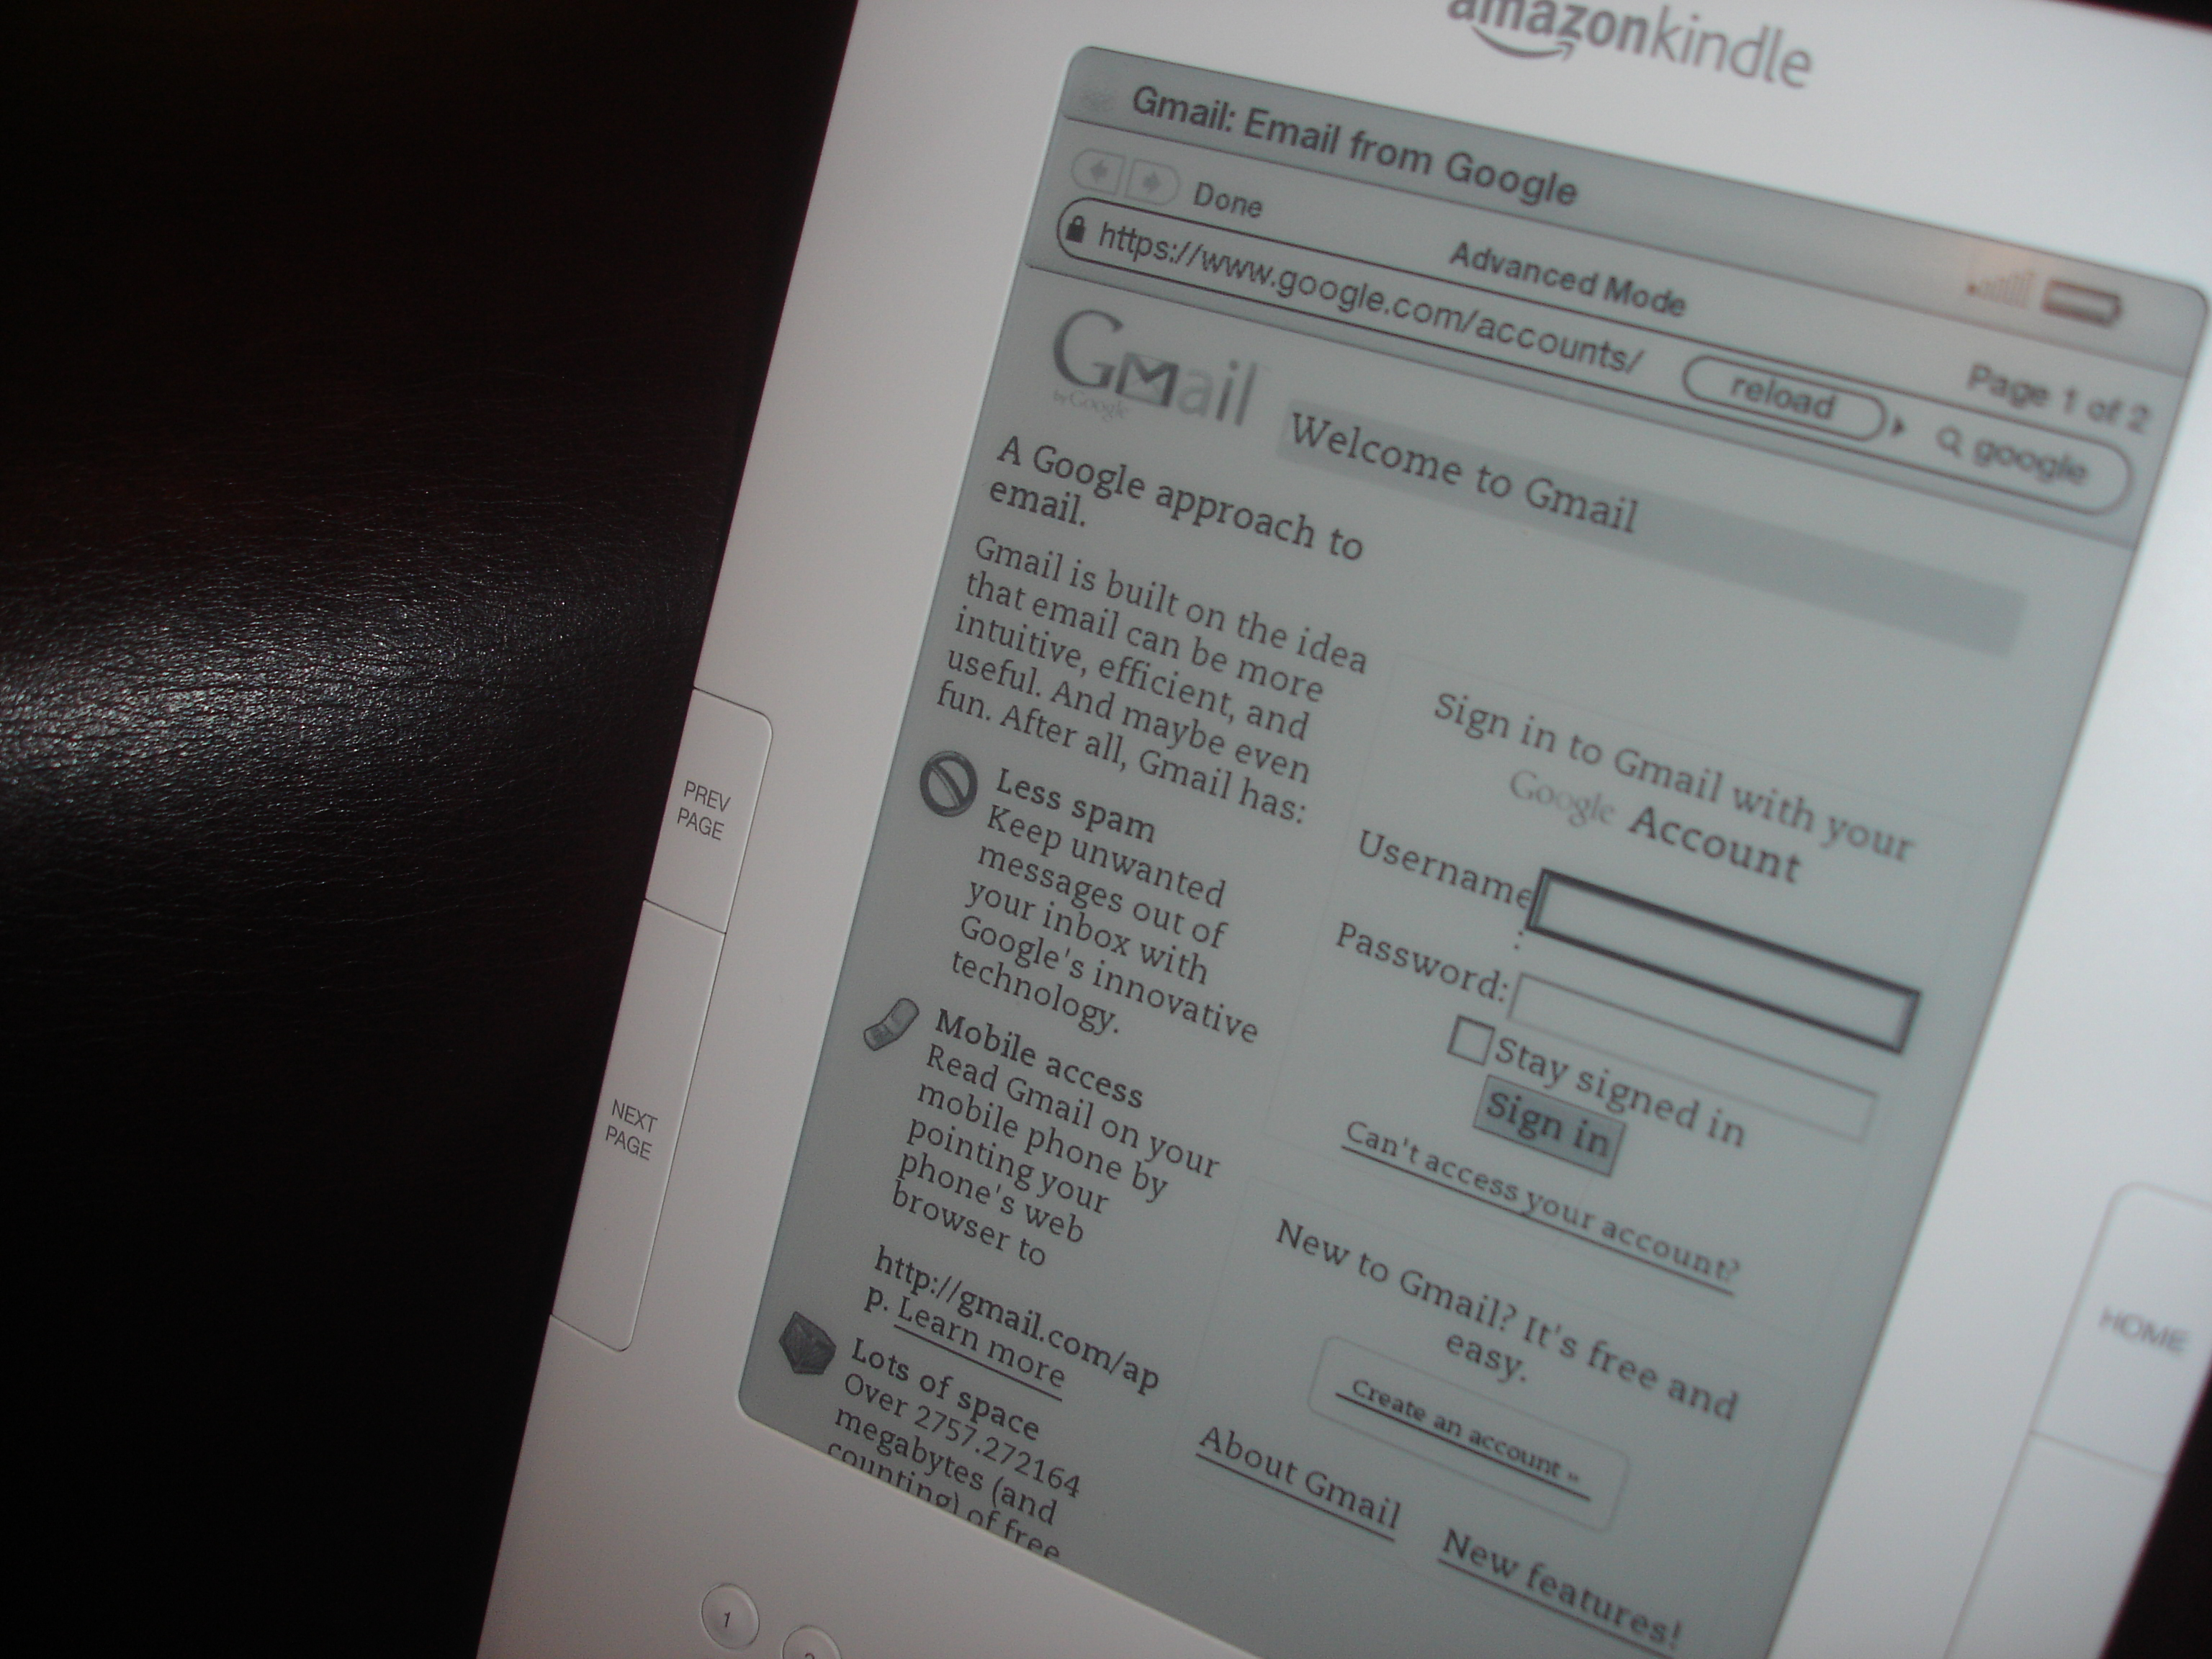 How to Check Your Email Using a Kindle